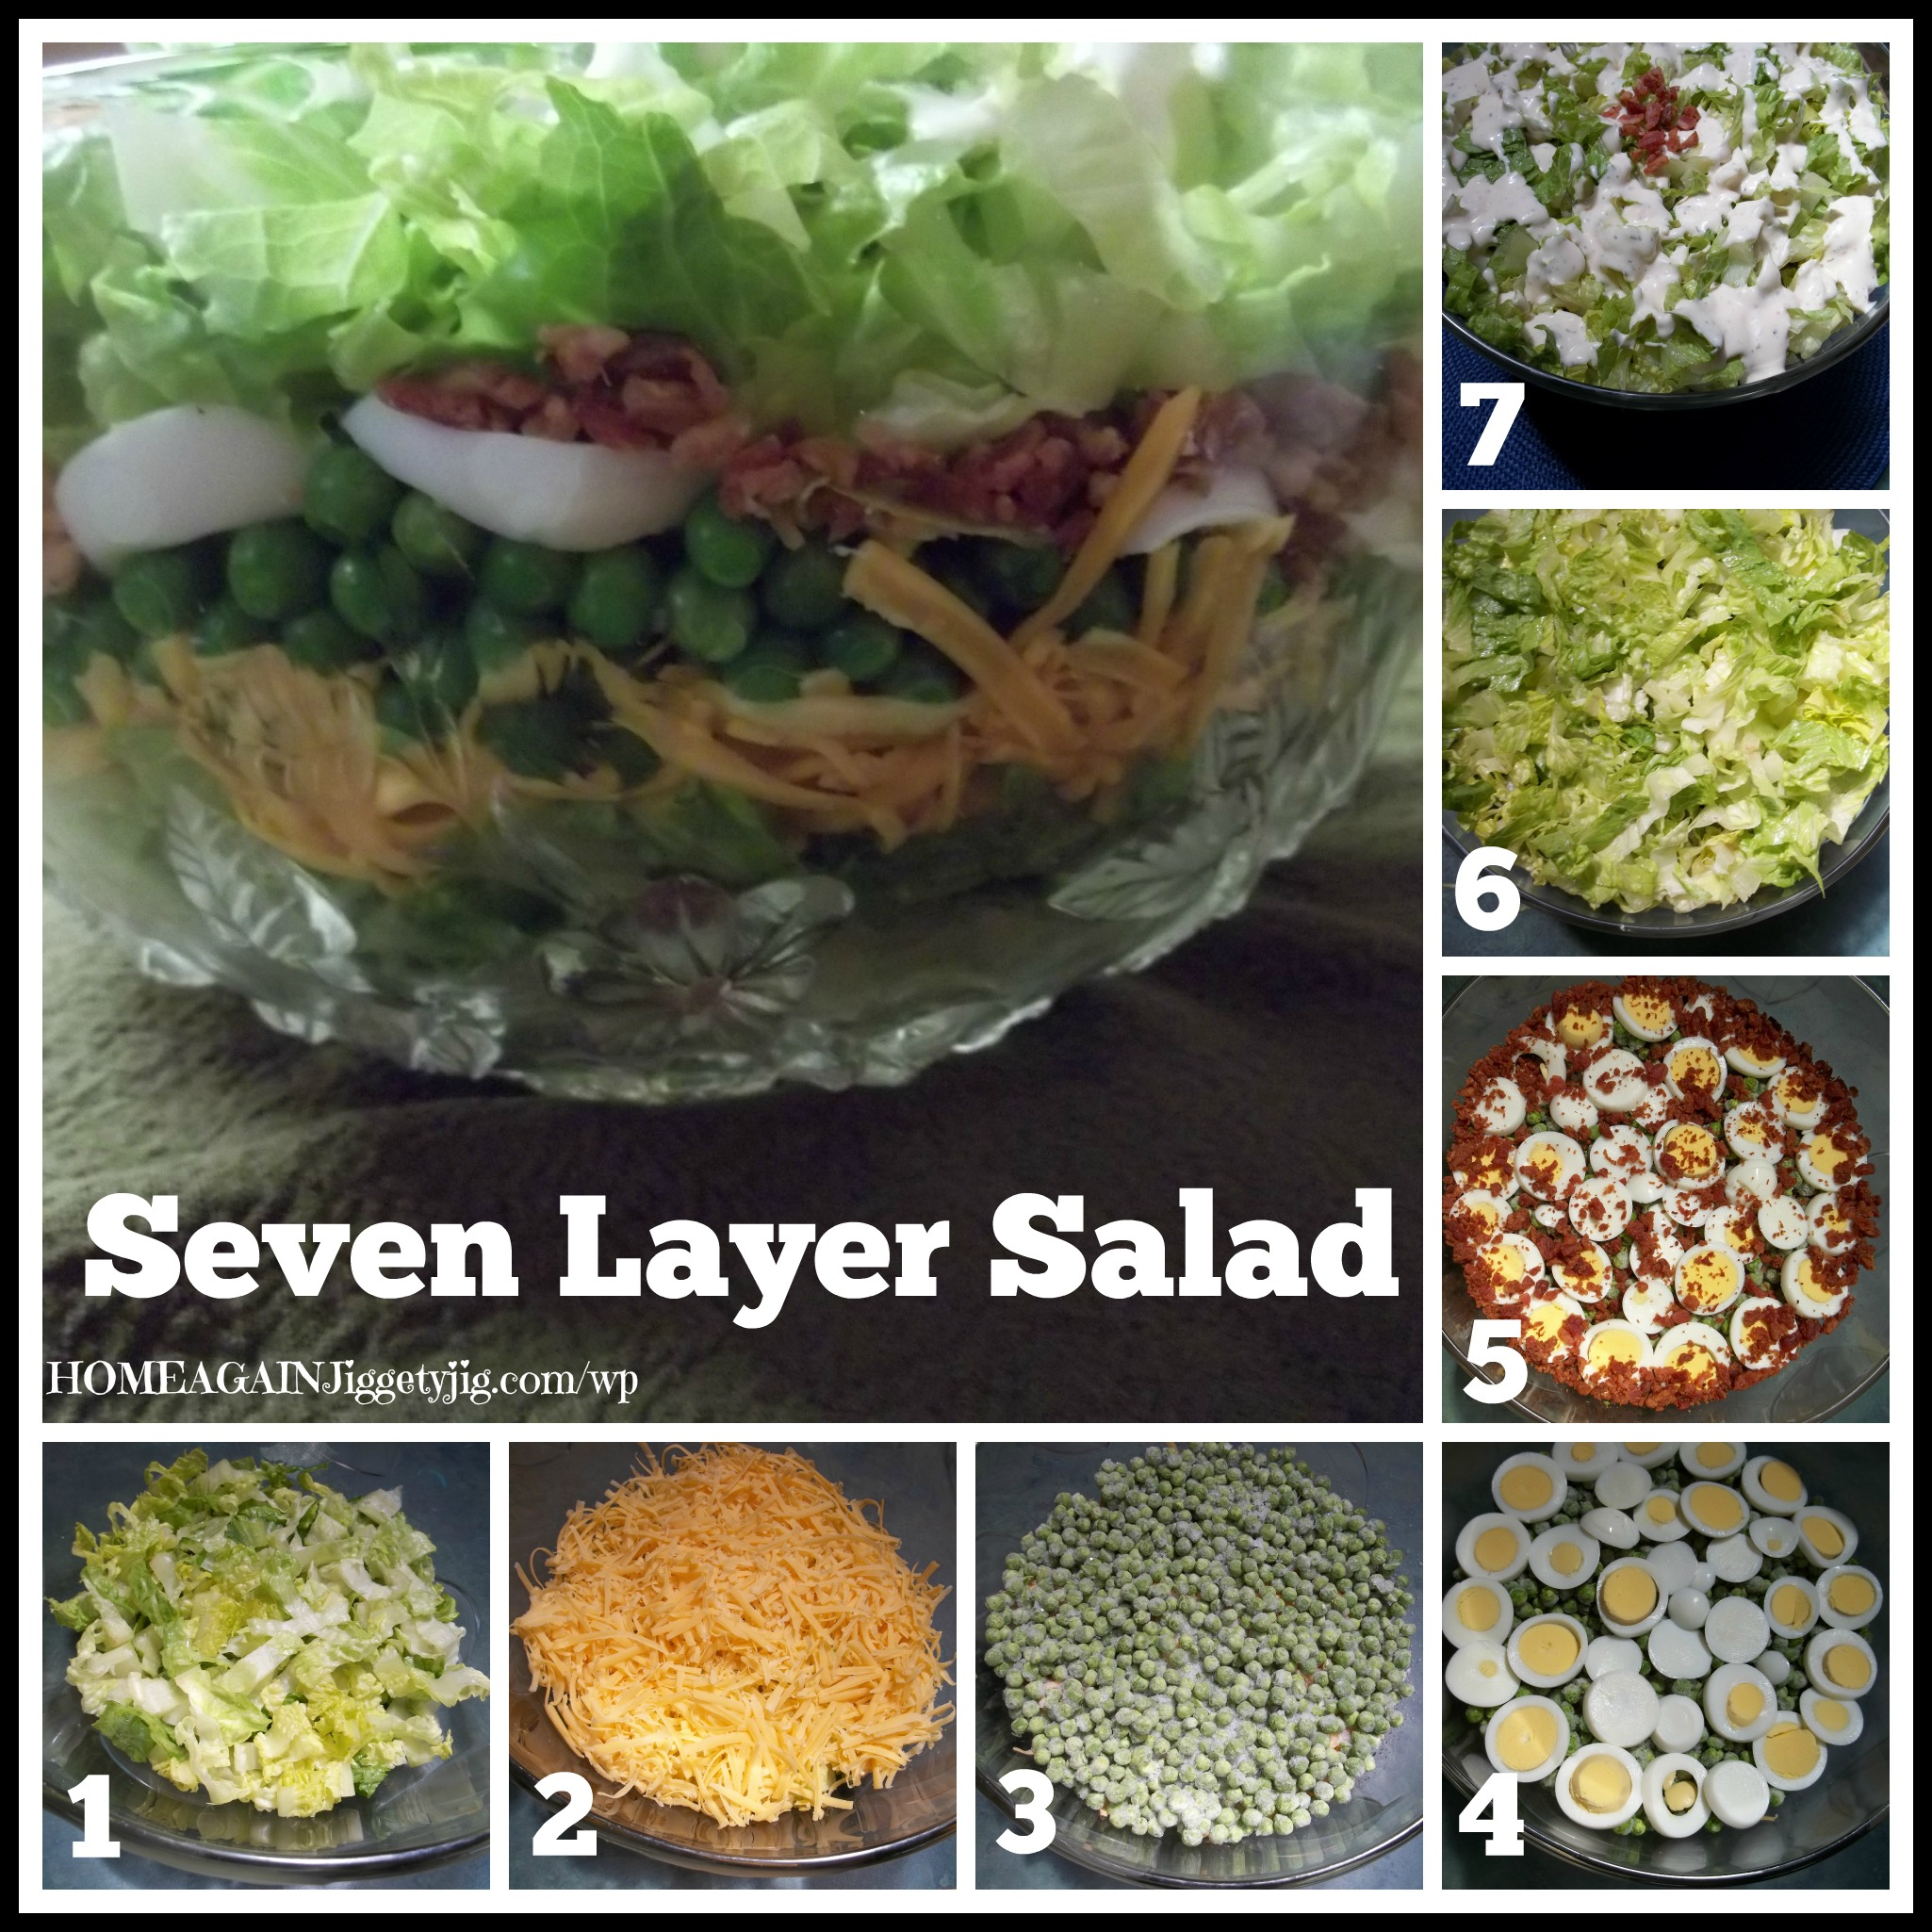 Seven Layer Salad 2